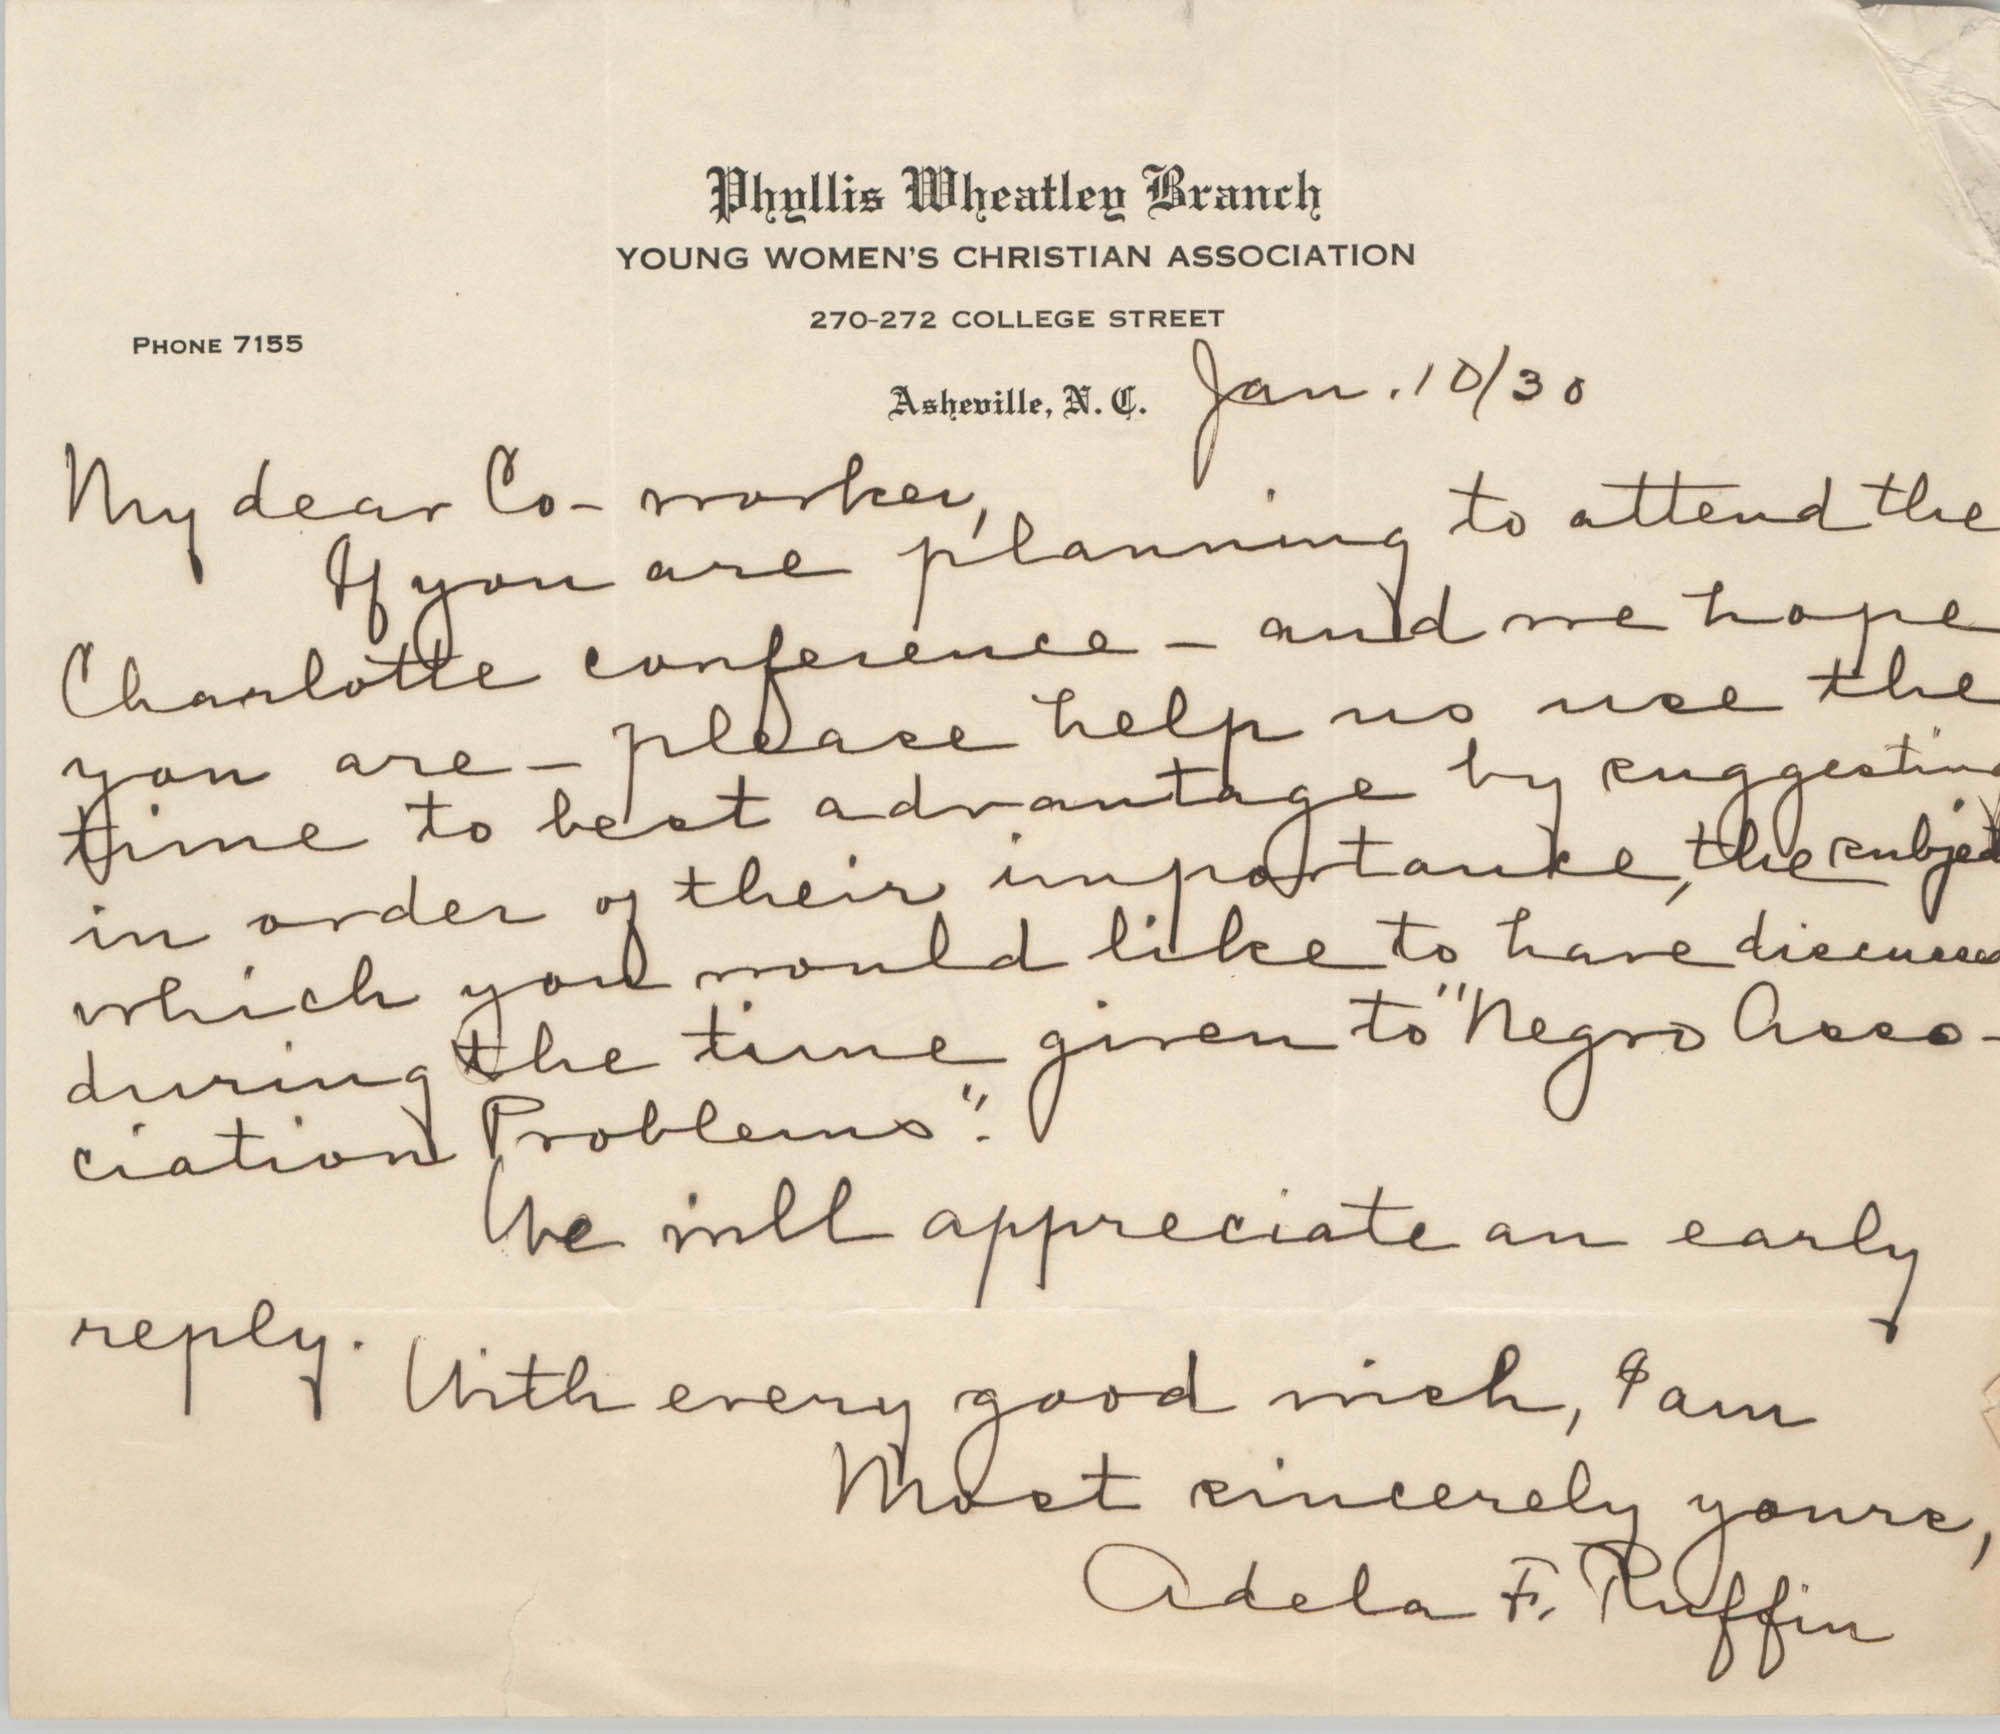 Letter from Adela F. Ruffin to Phyllis Wheatley Branch of the Y.W.C.A. Co-Worker, January 10, 1930